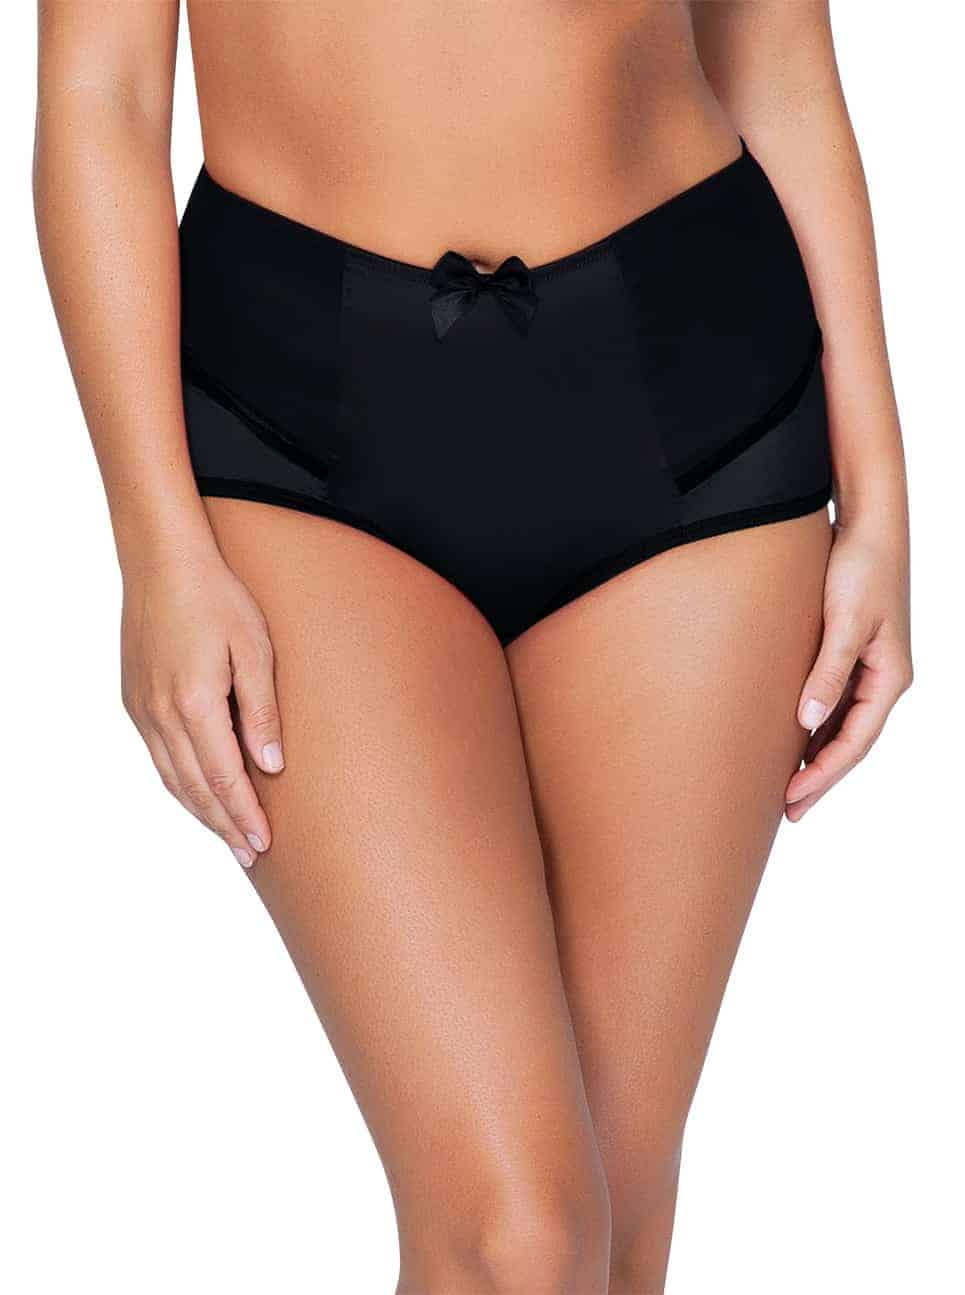 Charlotte 6917 HighWaistedBriefBlack Front copy - Charlotte Highwaist Brief - Black - 6917